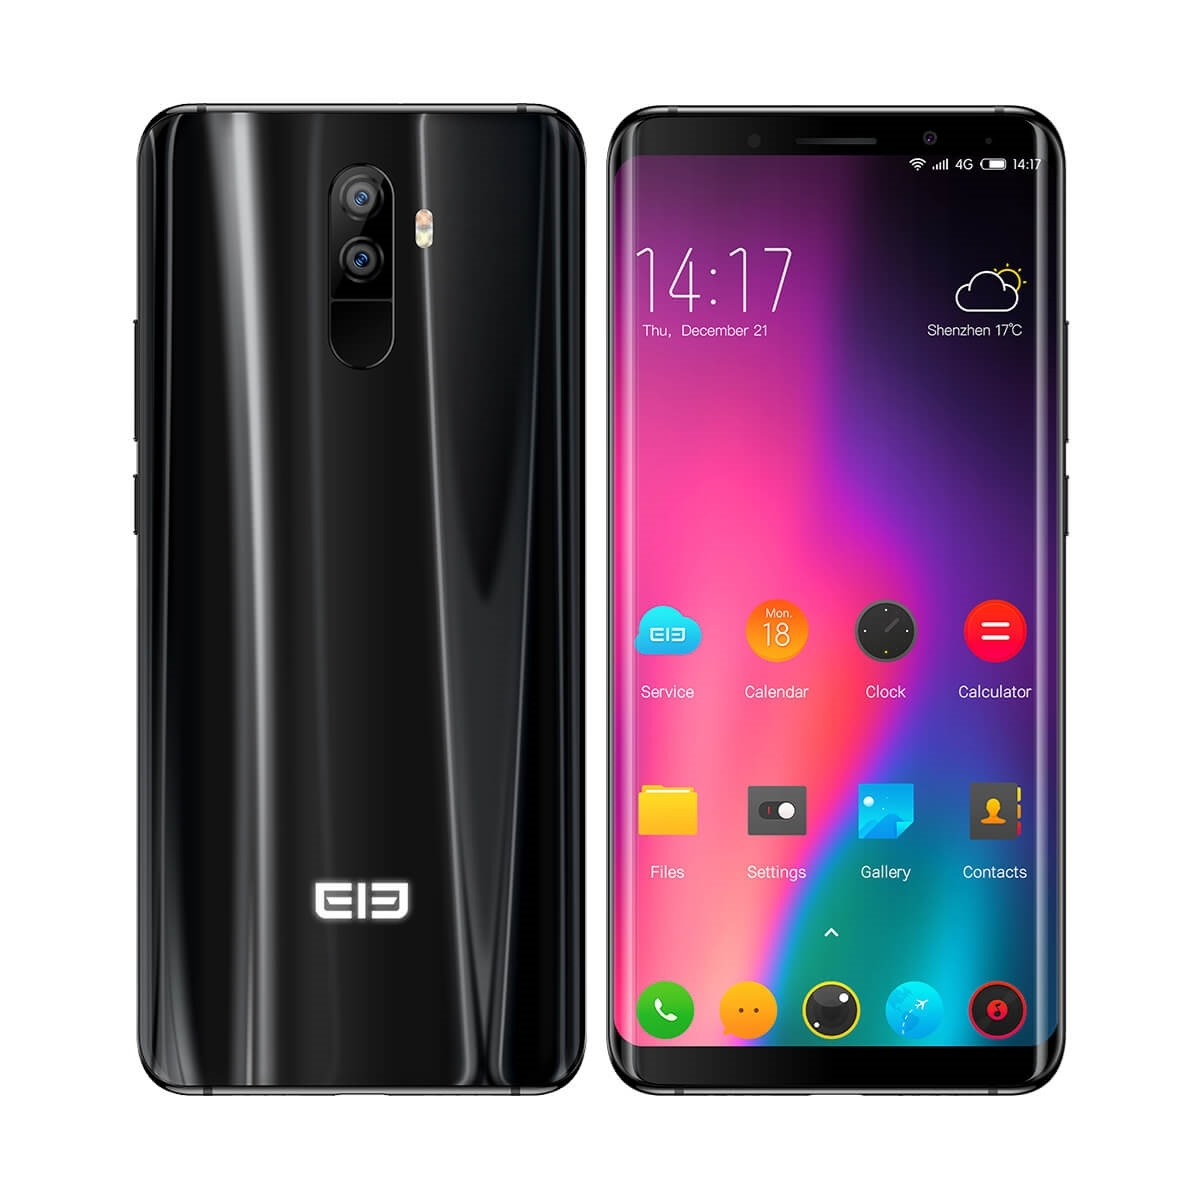 mejores smartphone chinos del 2018 Elephone U Pro